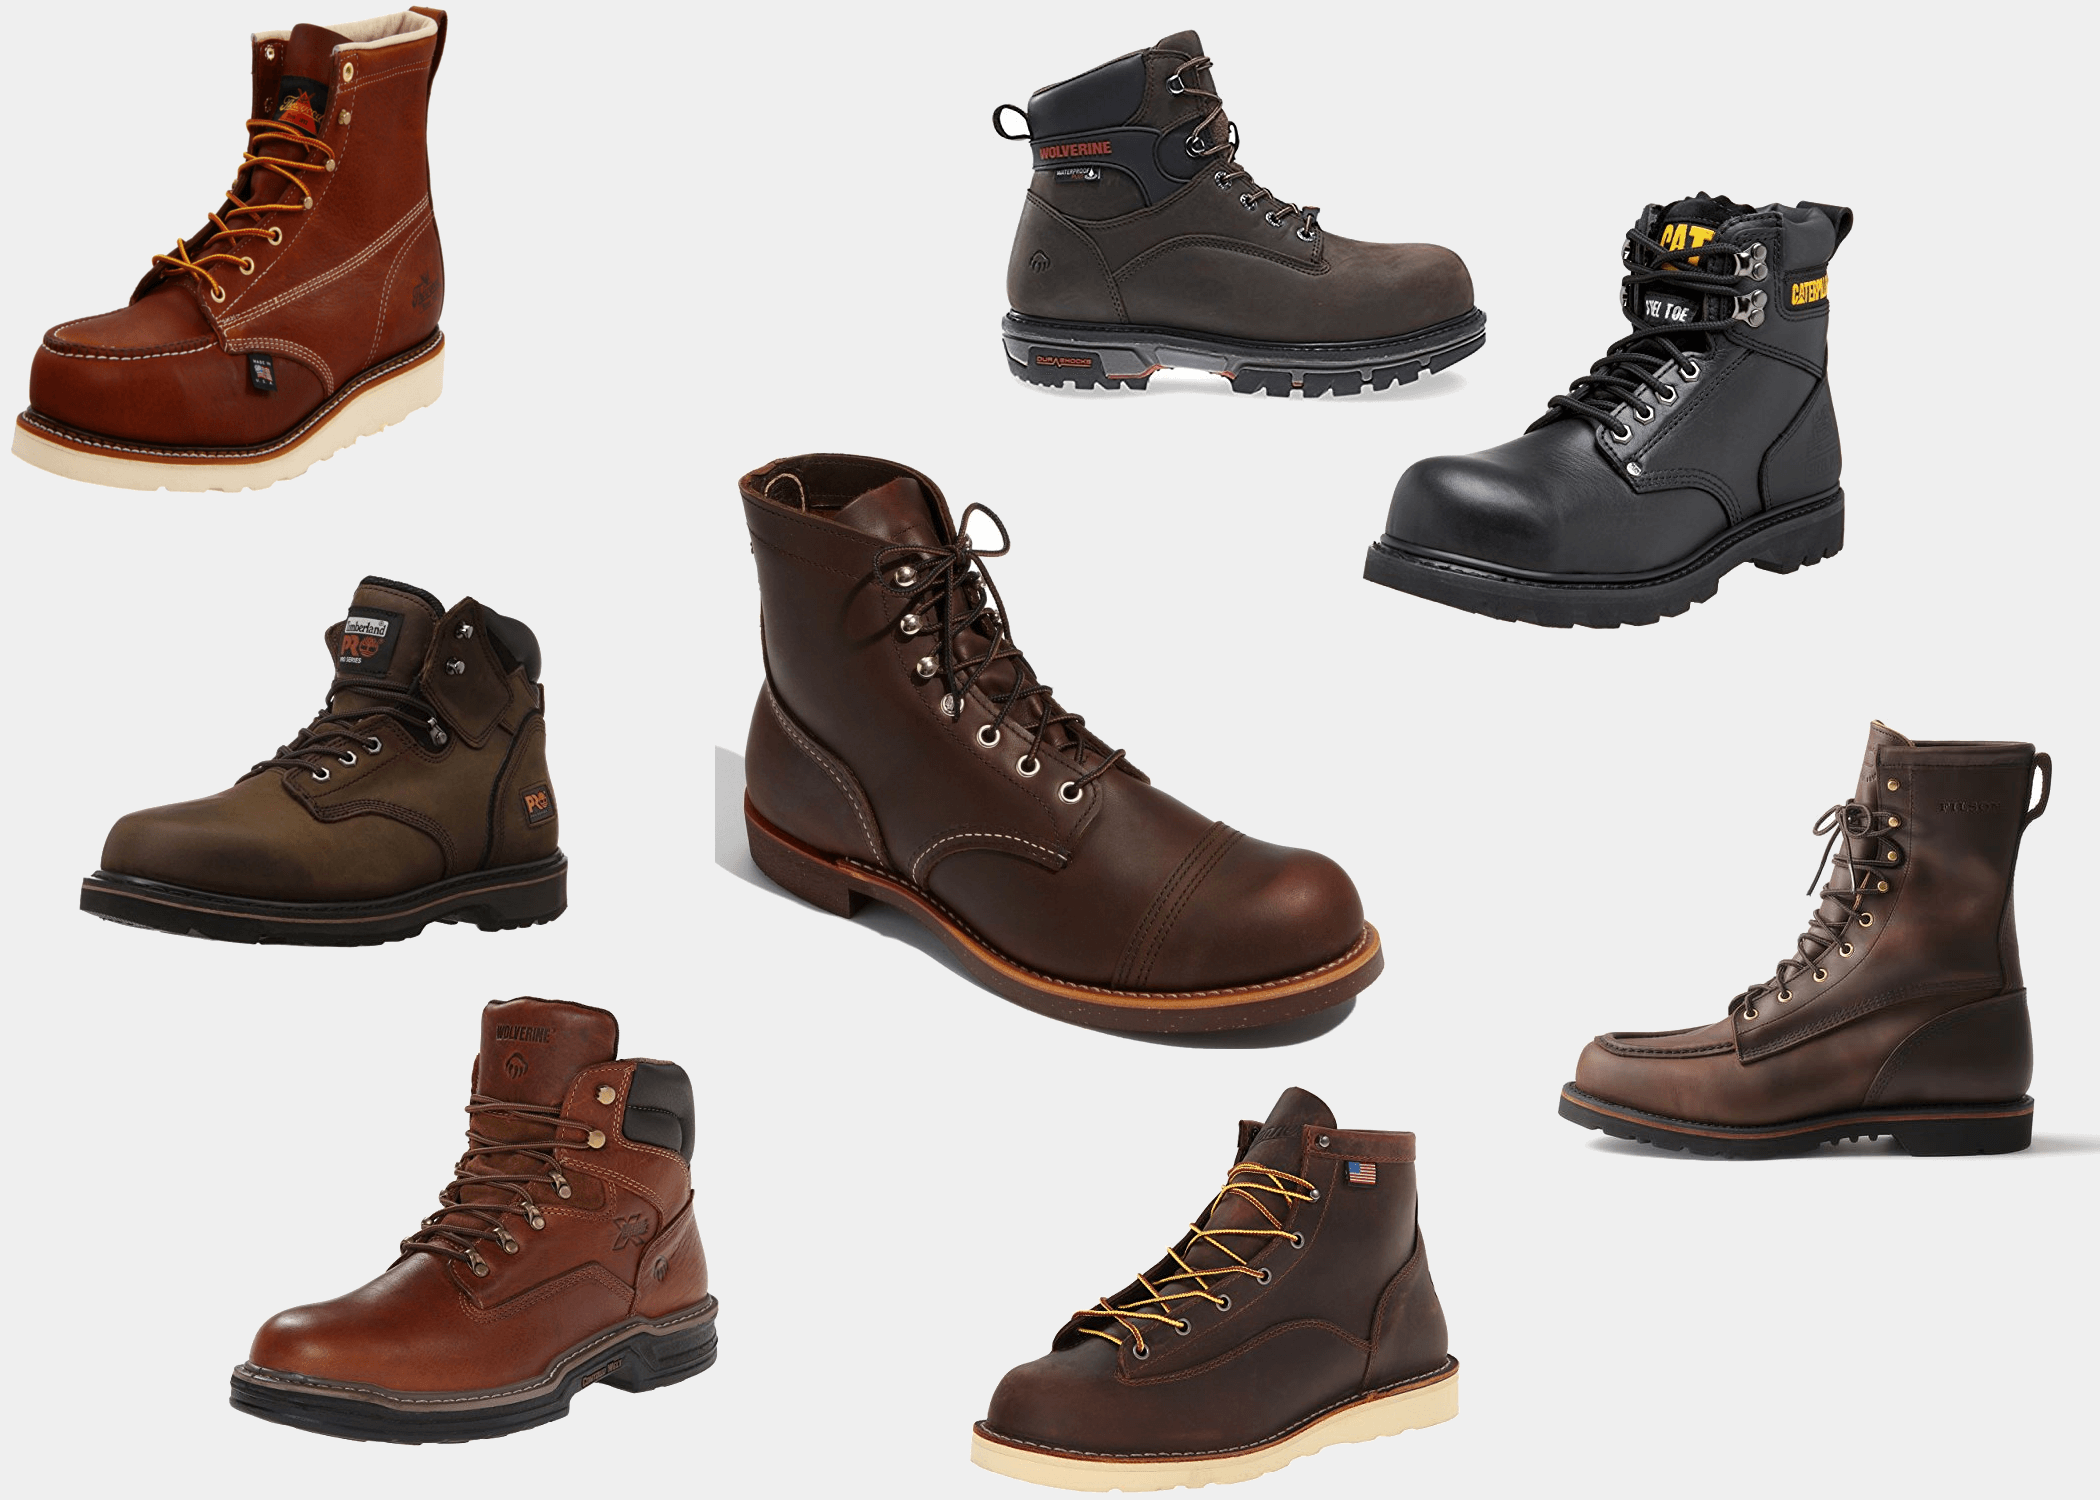 40f844083cd The 11 Best Work Boots for Men | Improb